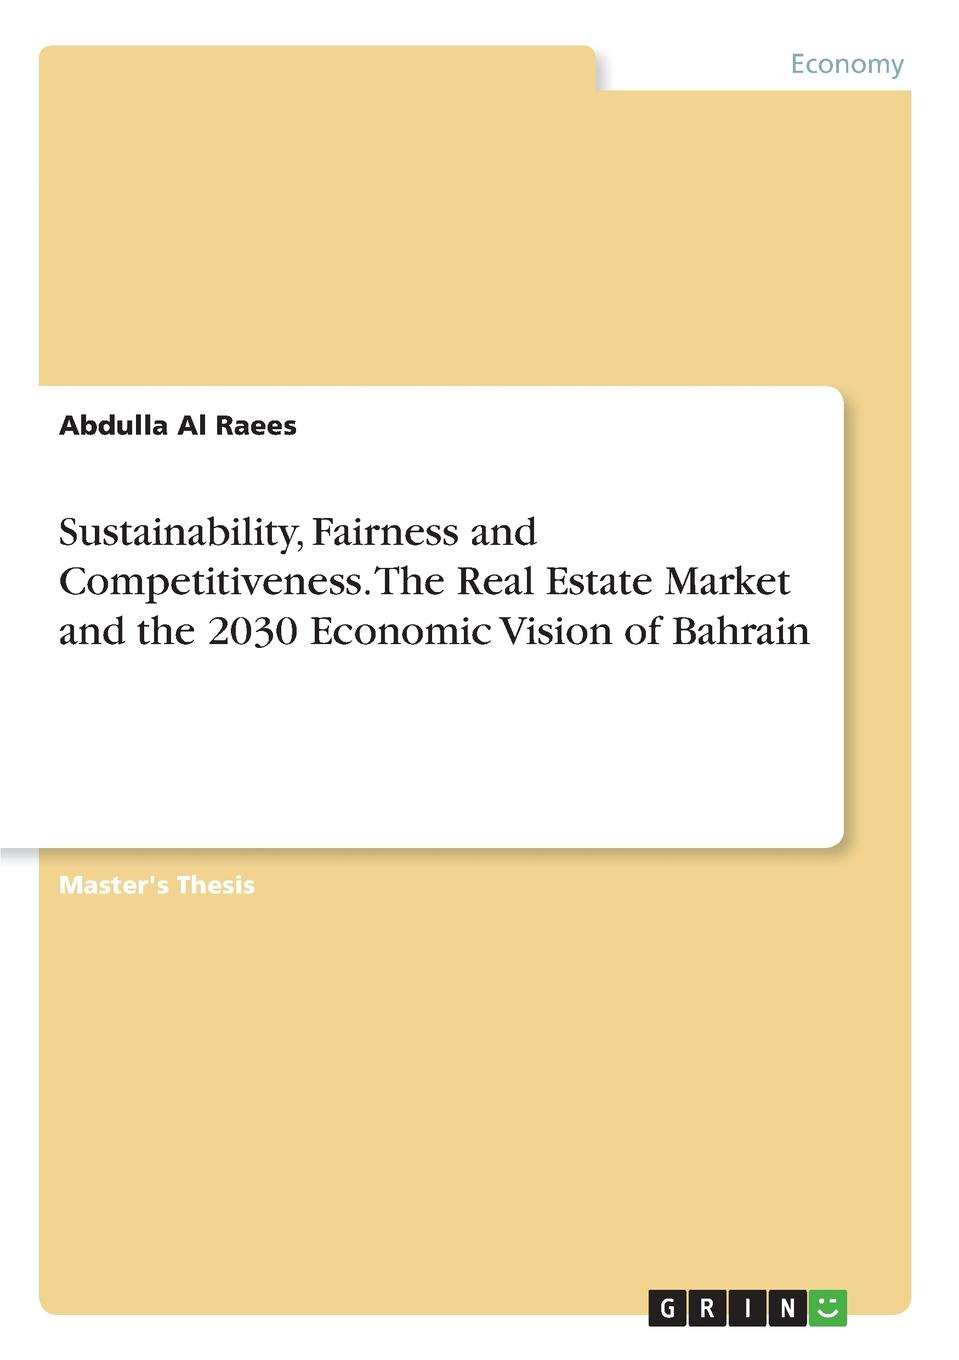 Abdulla Al Raees Sustainability, Fairness and Competitiveness. The Real Estate Market and the 2030 Economic Vision of Bahrain